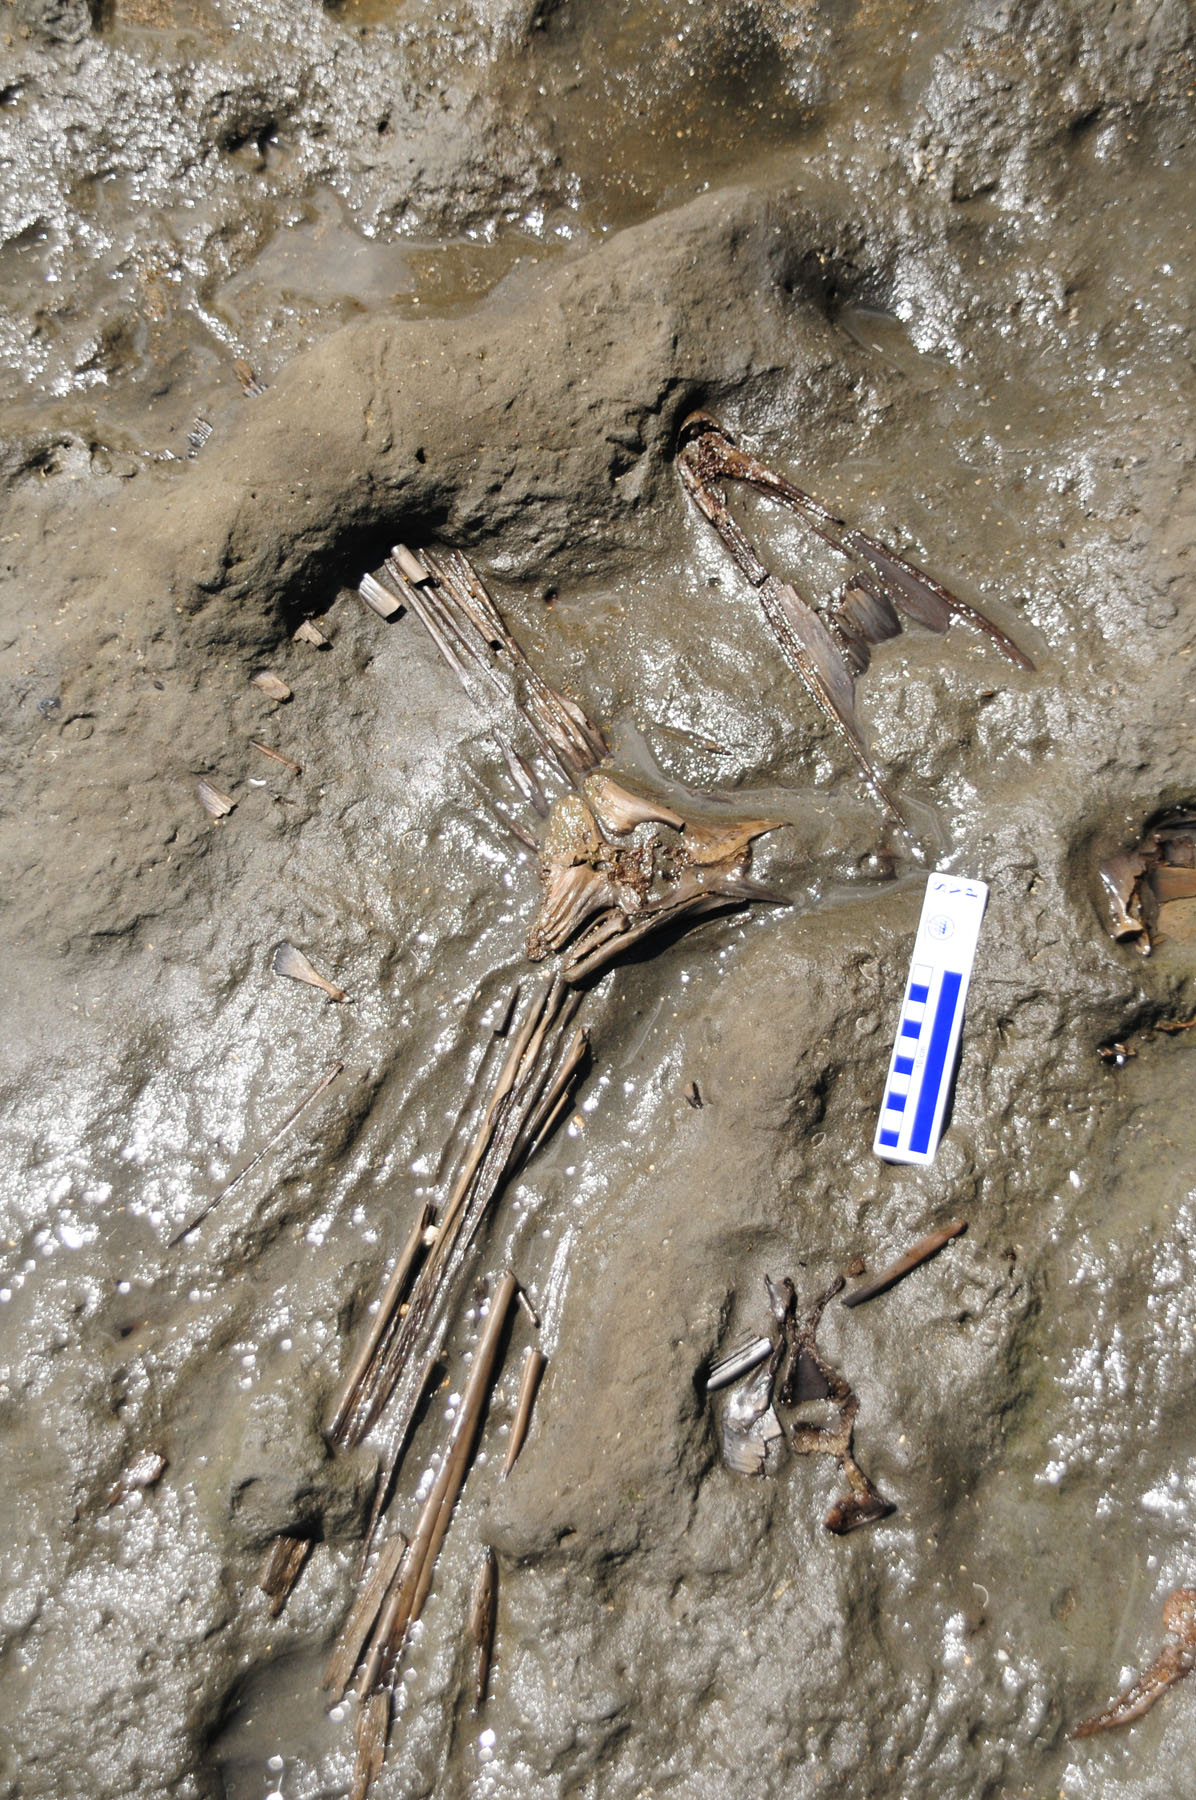 Complete Fish Skeleton Discovered by Smithsonian Scientists in Panama<div class='credit'><strong>Credit:</strong> Complete Fish Skeleton Discovered by Smithsonian Scientists in Panama</div>